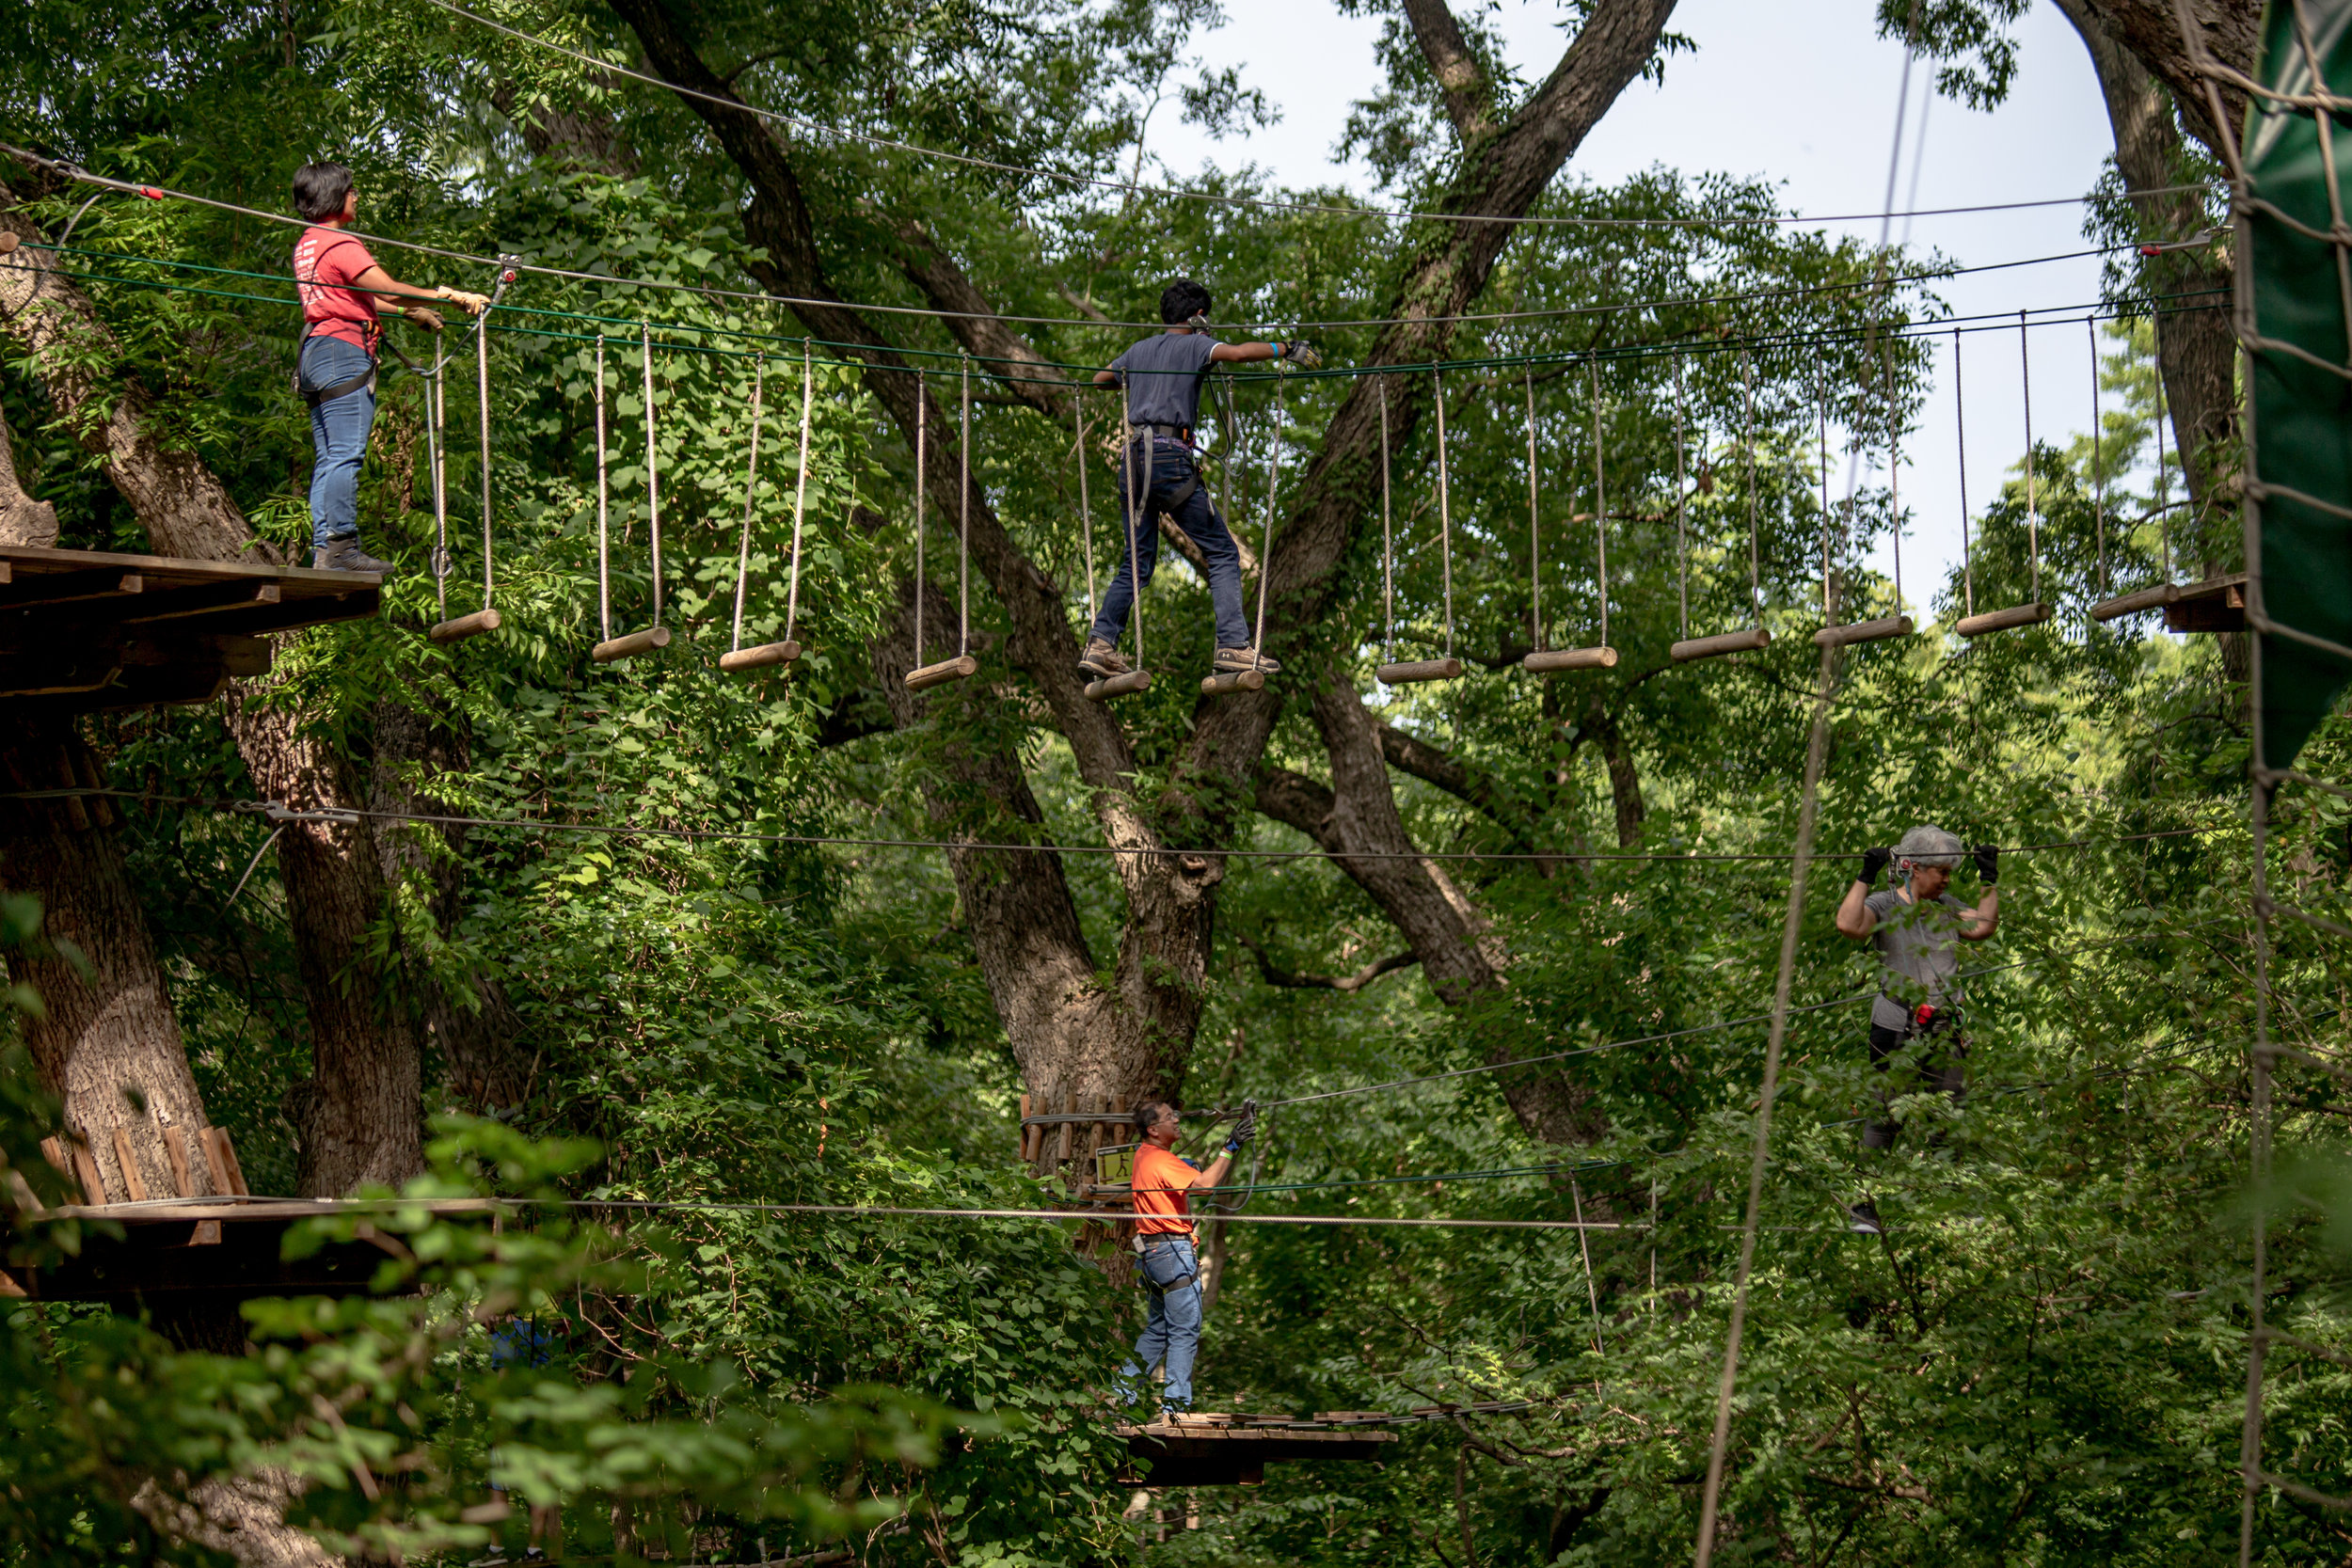 JULY 4, 2109 - LOCAL TEXANS BALANCE AND CLIMB ON TREES AND CABLES AT GO APE CLIMB PARK IN PLANO, TEXAS.